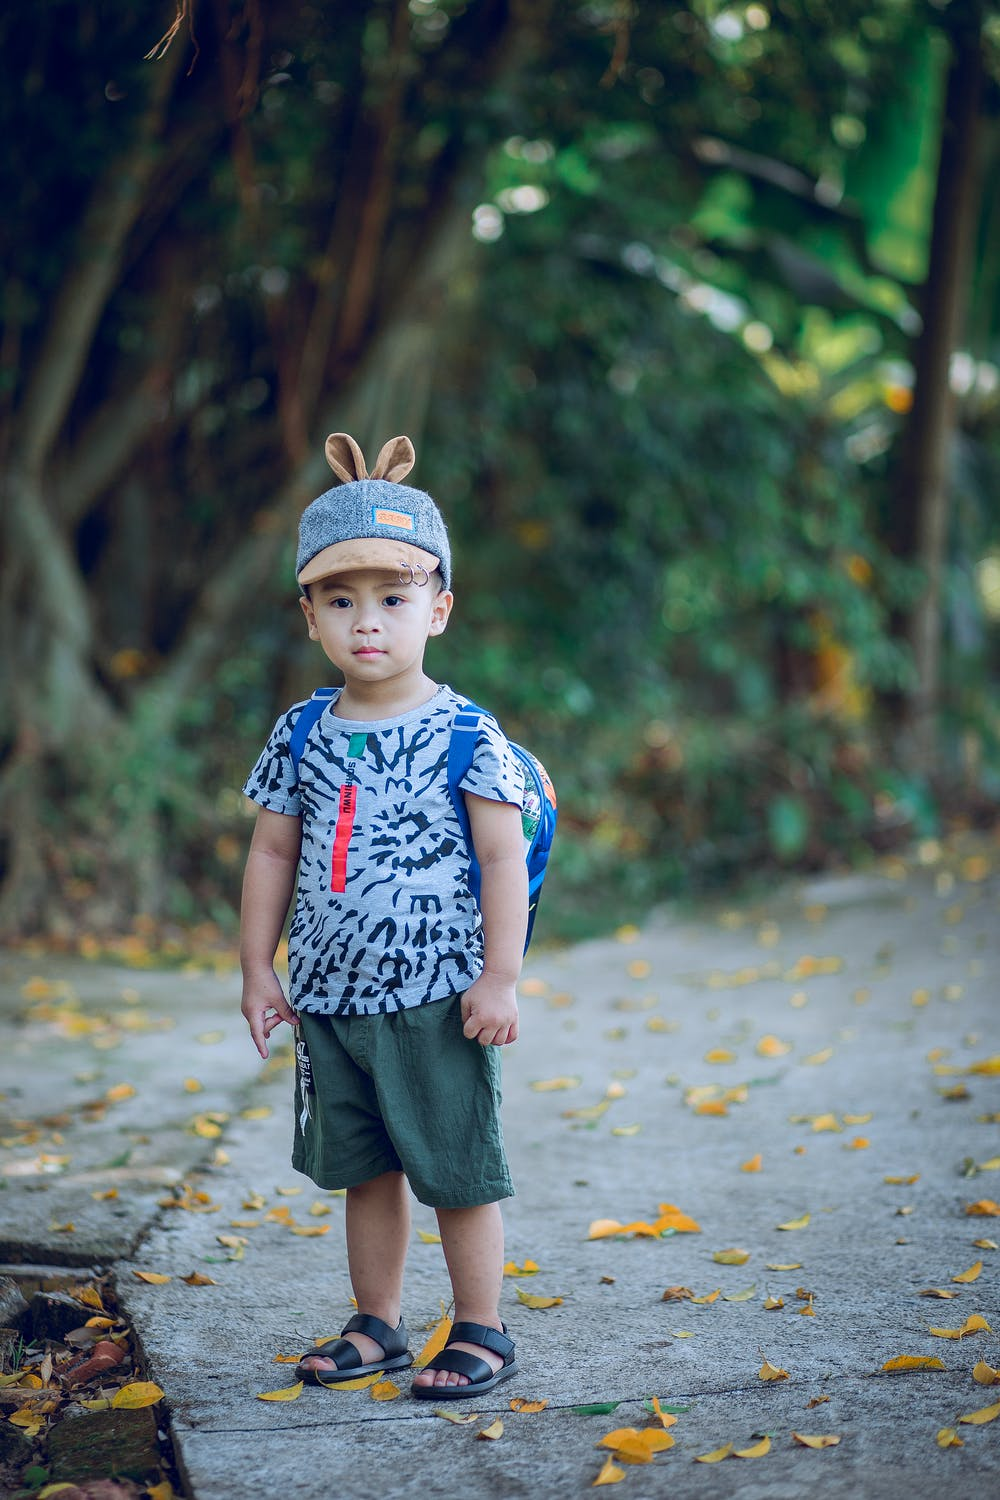 A little boy standing on concrete pathway | Photo: Pexels